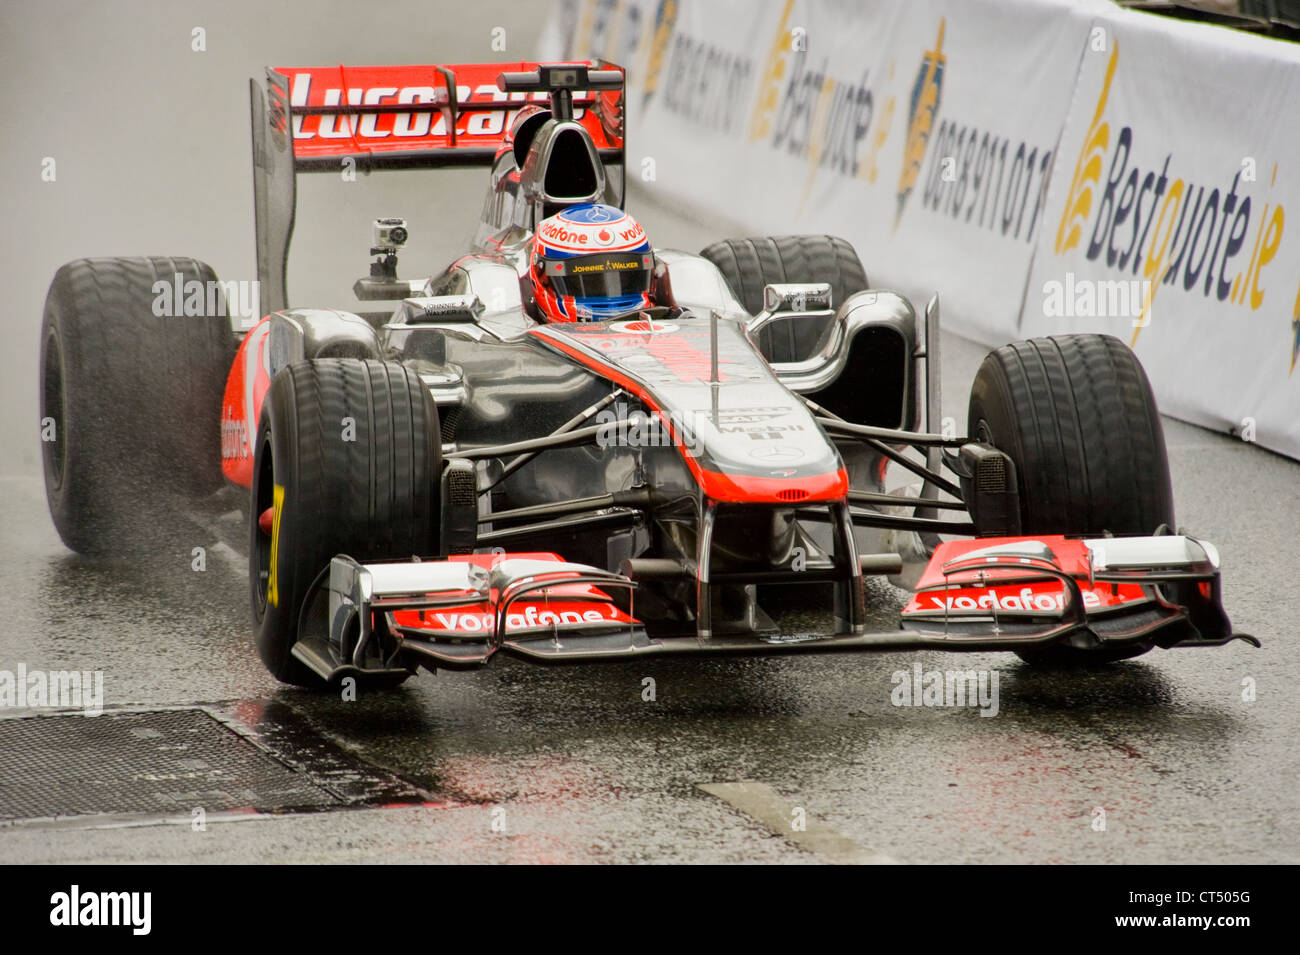 eb9e64aa610 Mclaren Mercedes Stock Photos   Mclaren Mercedes Stock Images - Page ...